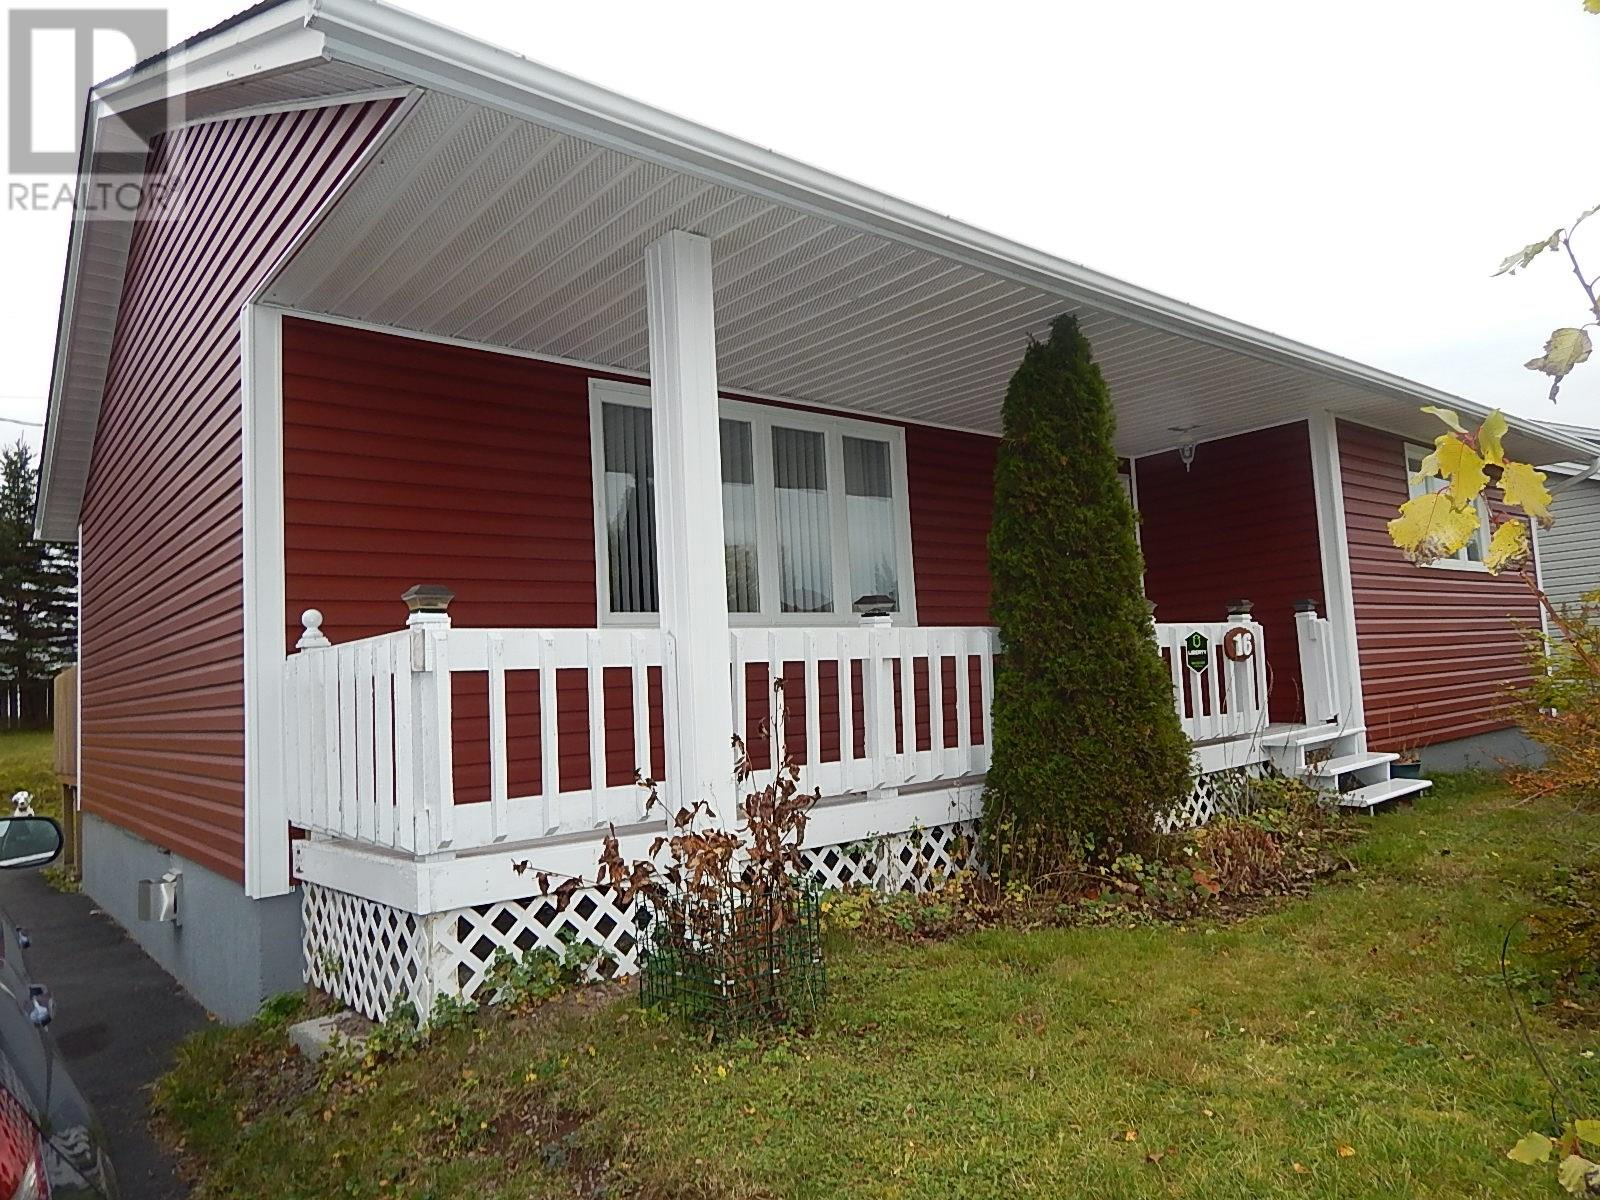 Removed: 16 Forest Road, Marystown, NL - Removed on 2019-11-12 06:27:19